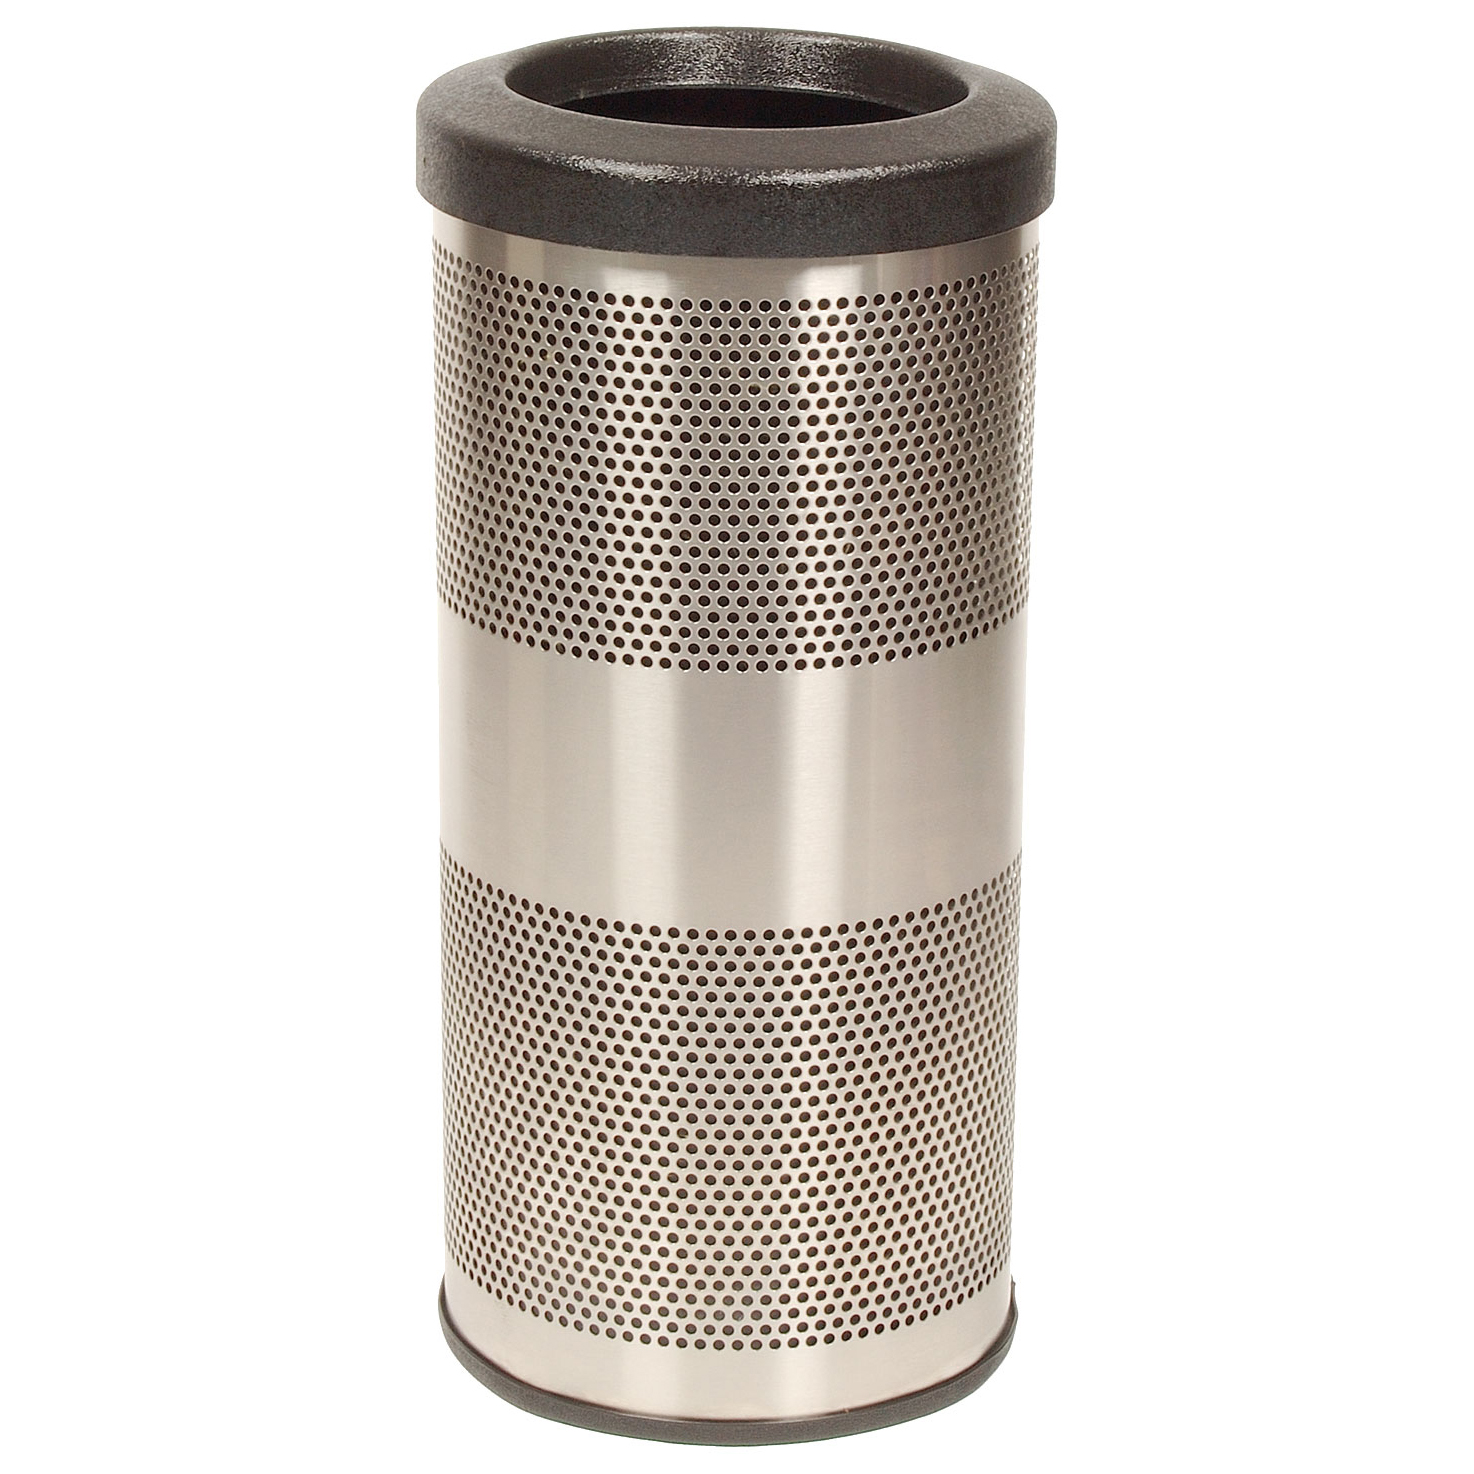 10 Gallon Stainless Steel Trash Can Perforated Trash Can